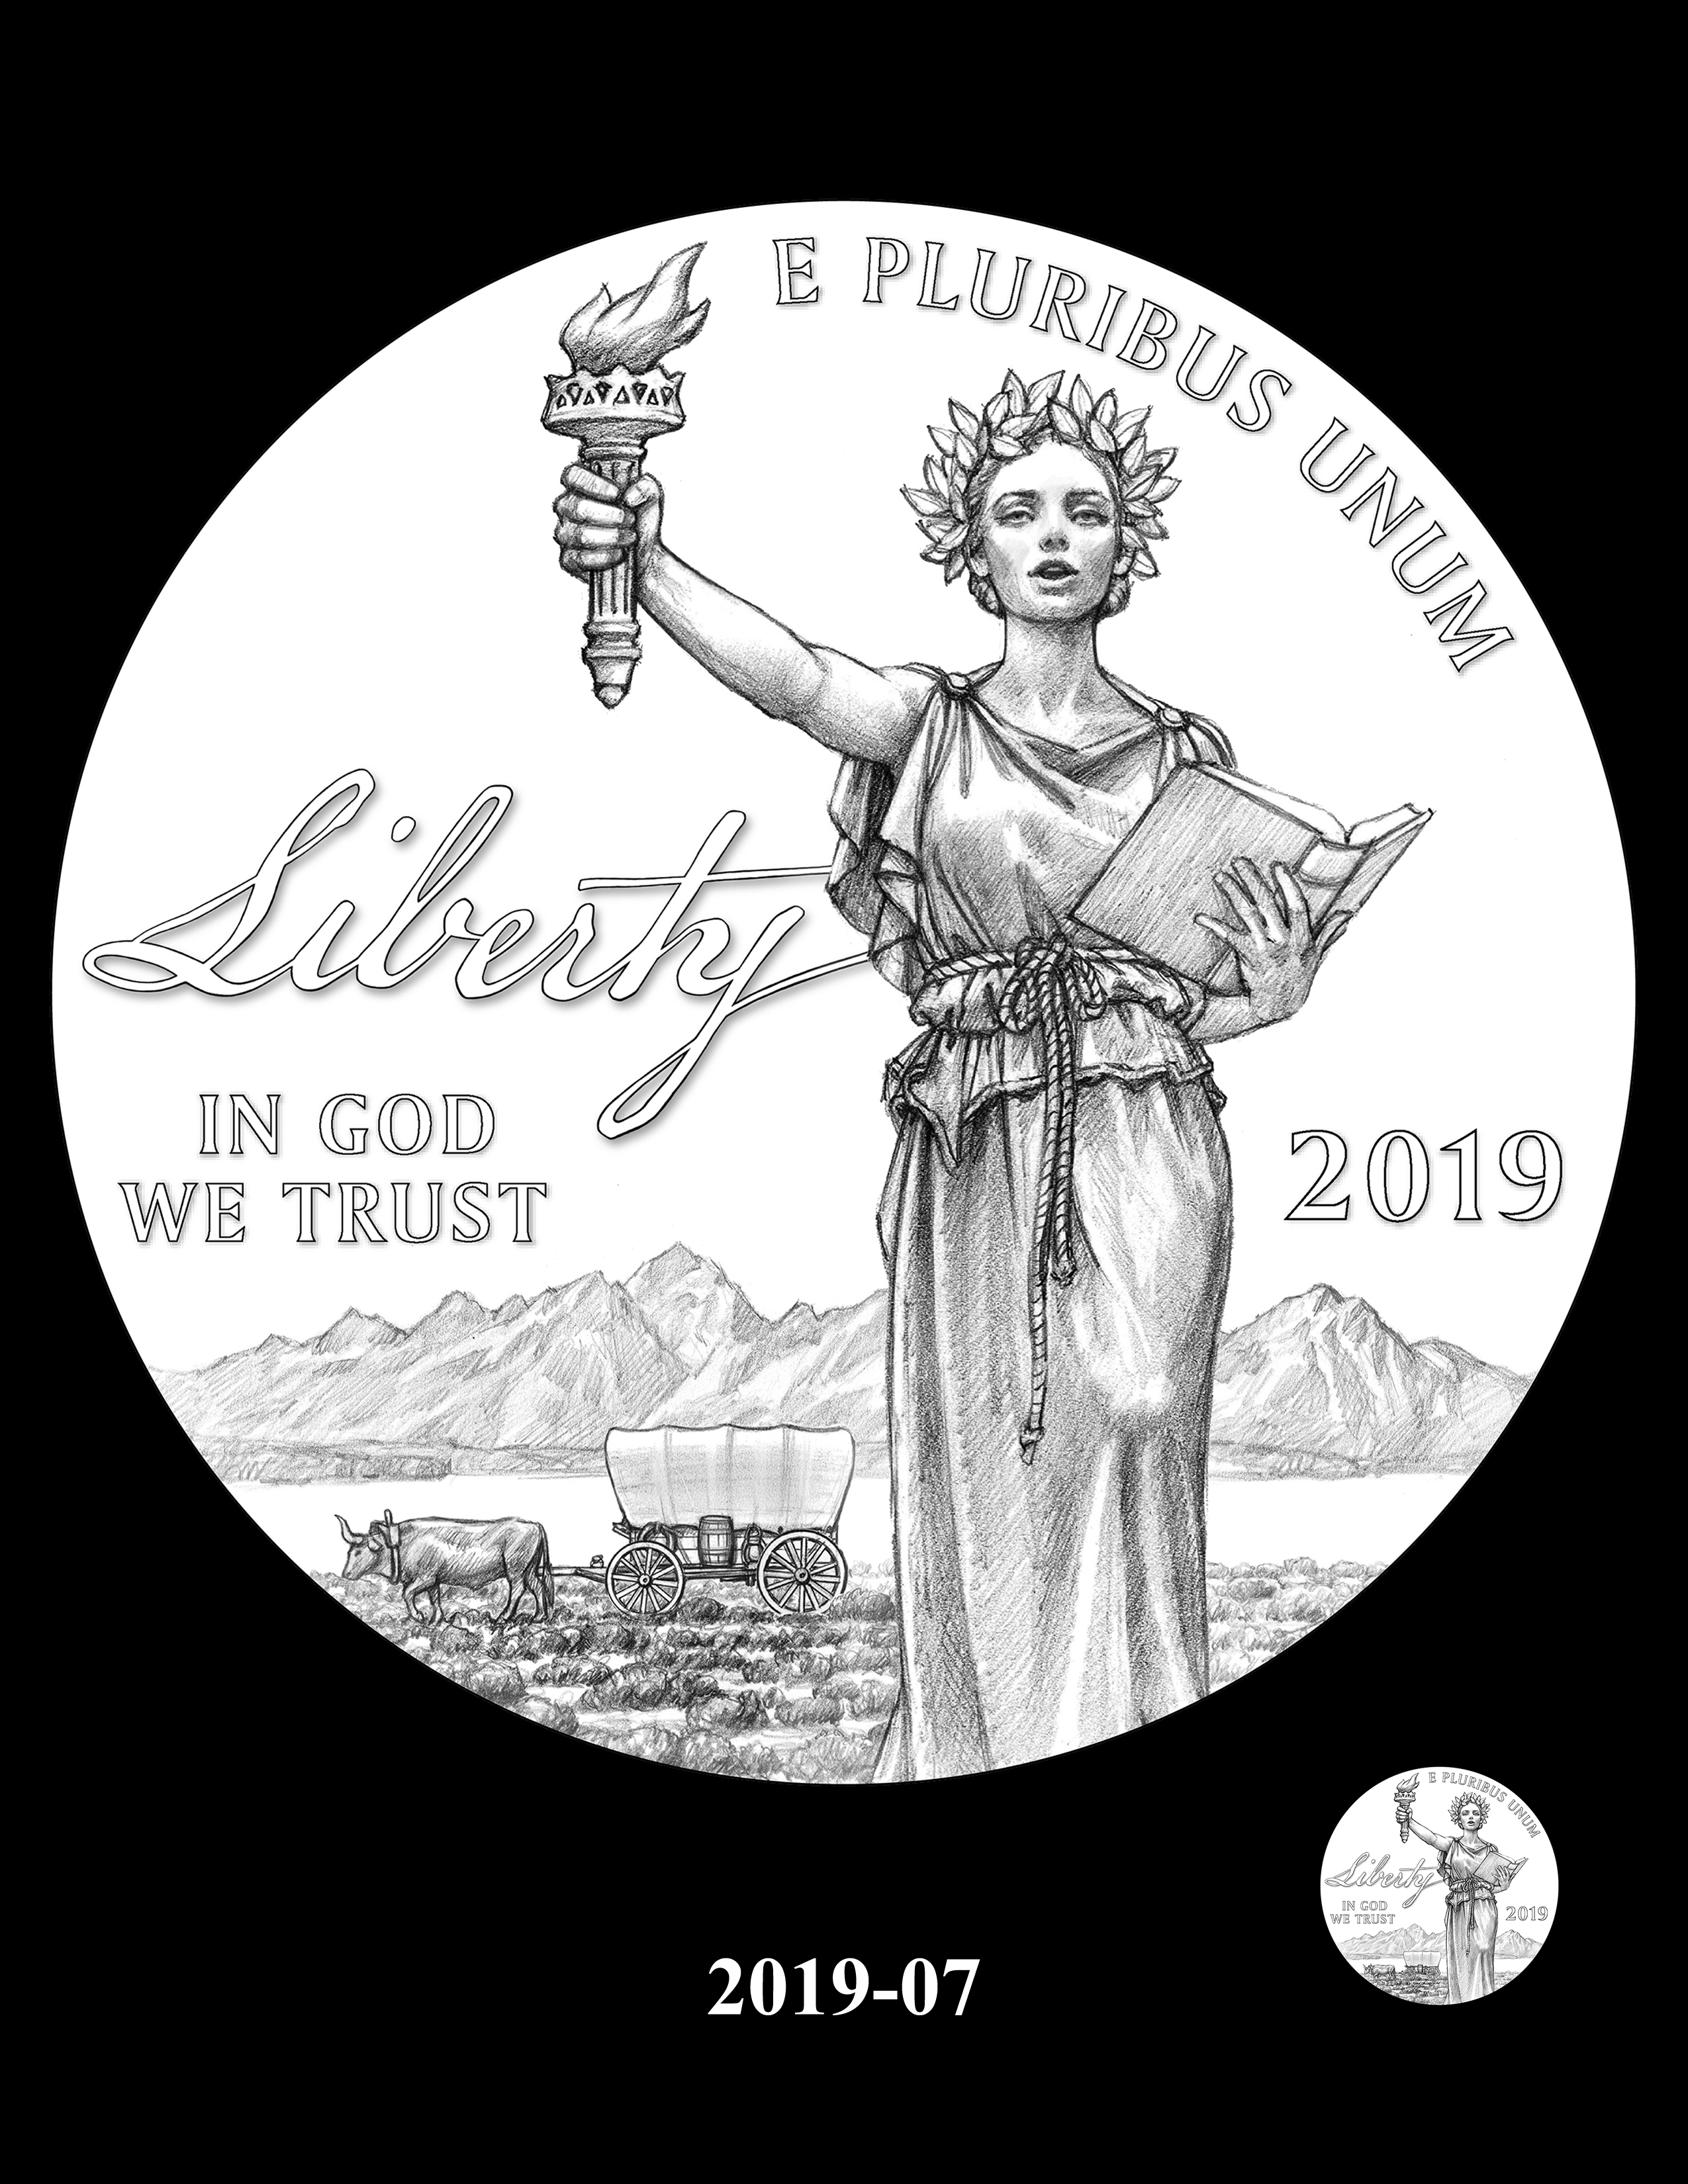 SET07-2019-07 - 2018 2019 and 2020 American Eagle Platinum Proof Program